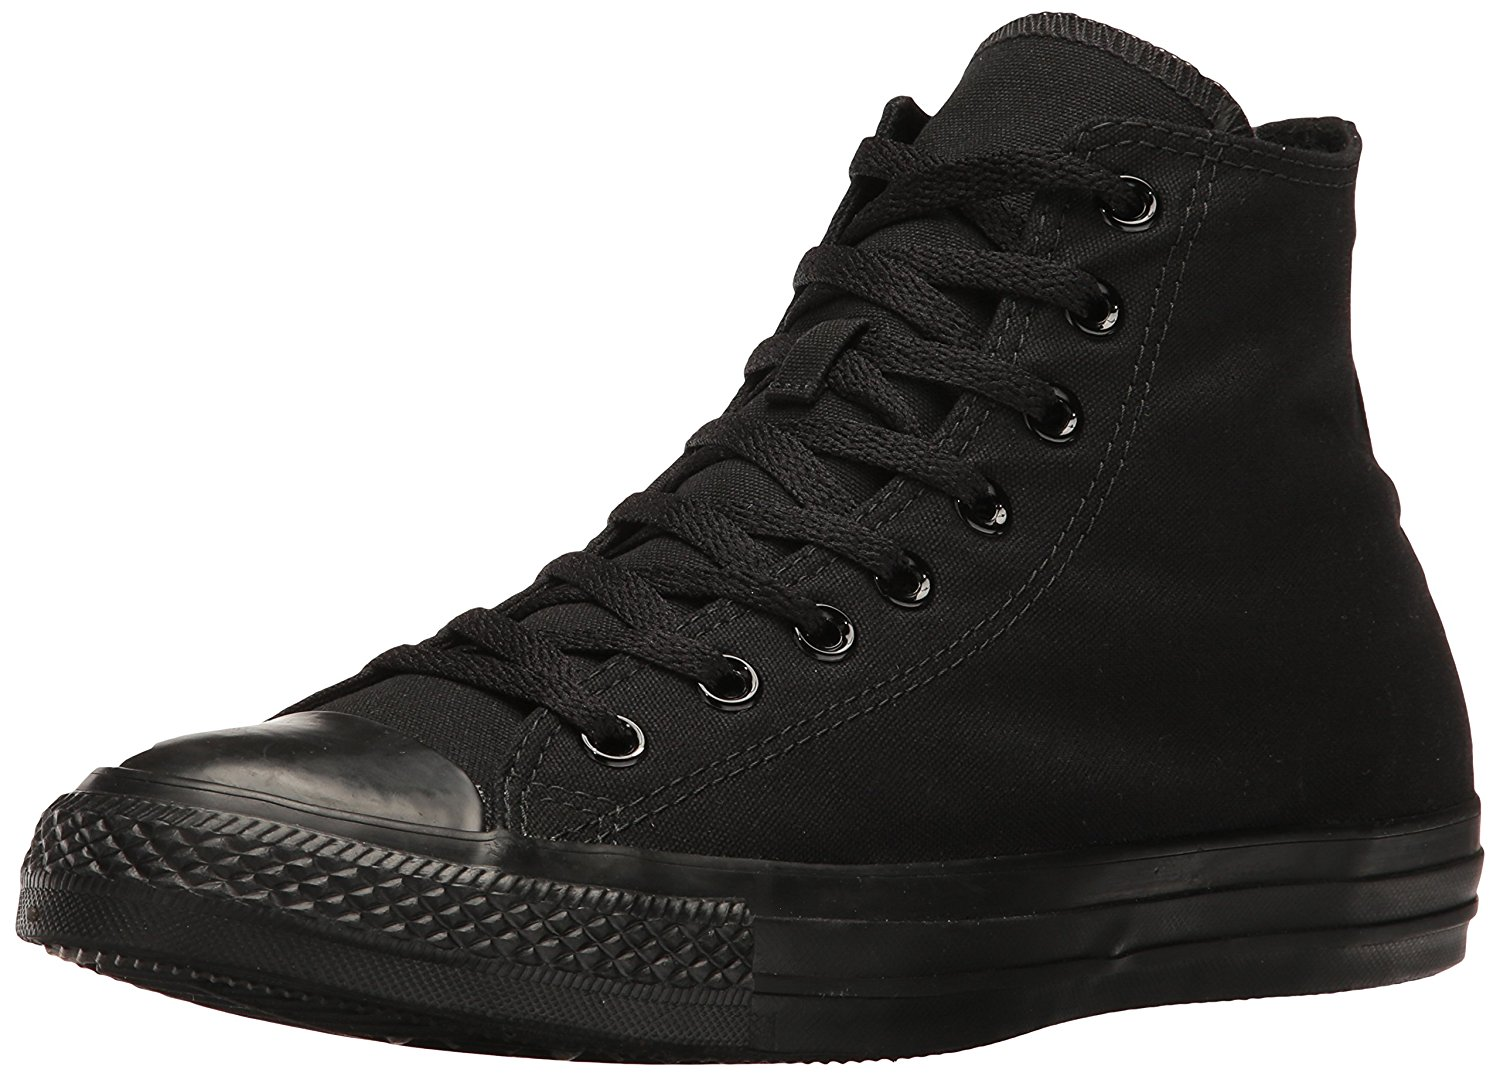 Converse All Star Ox Basketball Shoes by Converse